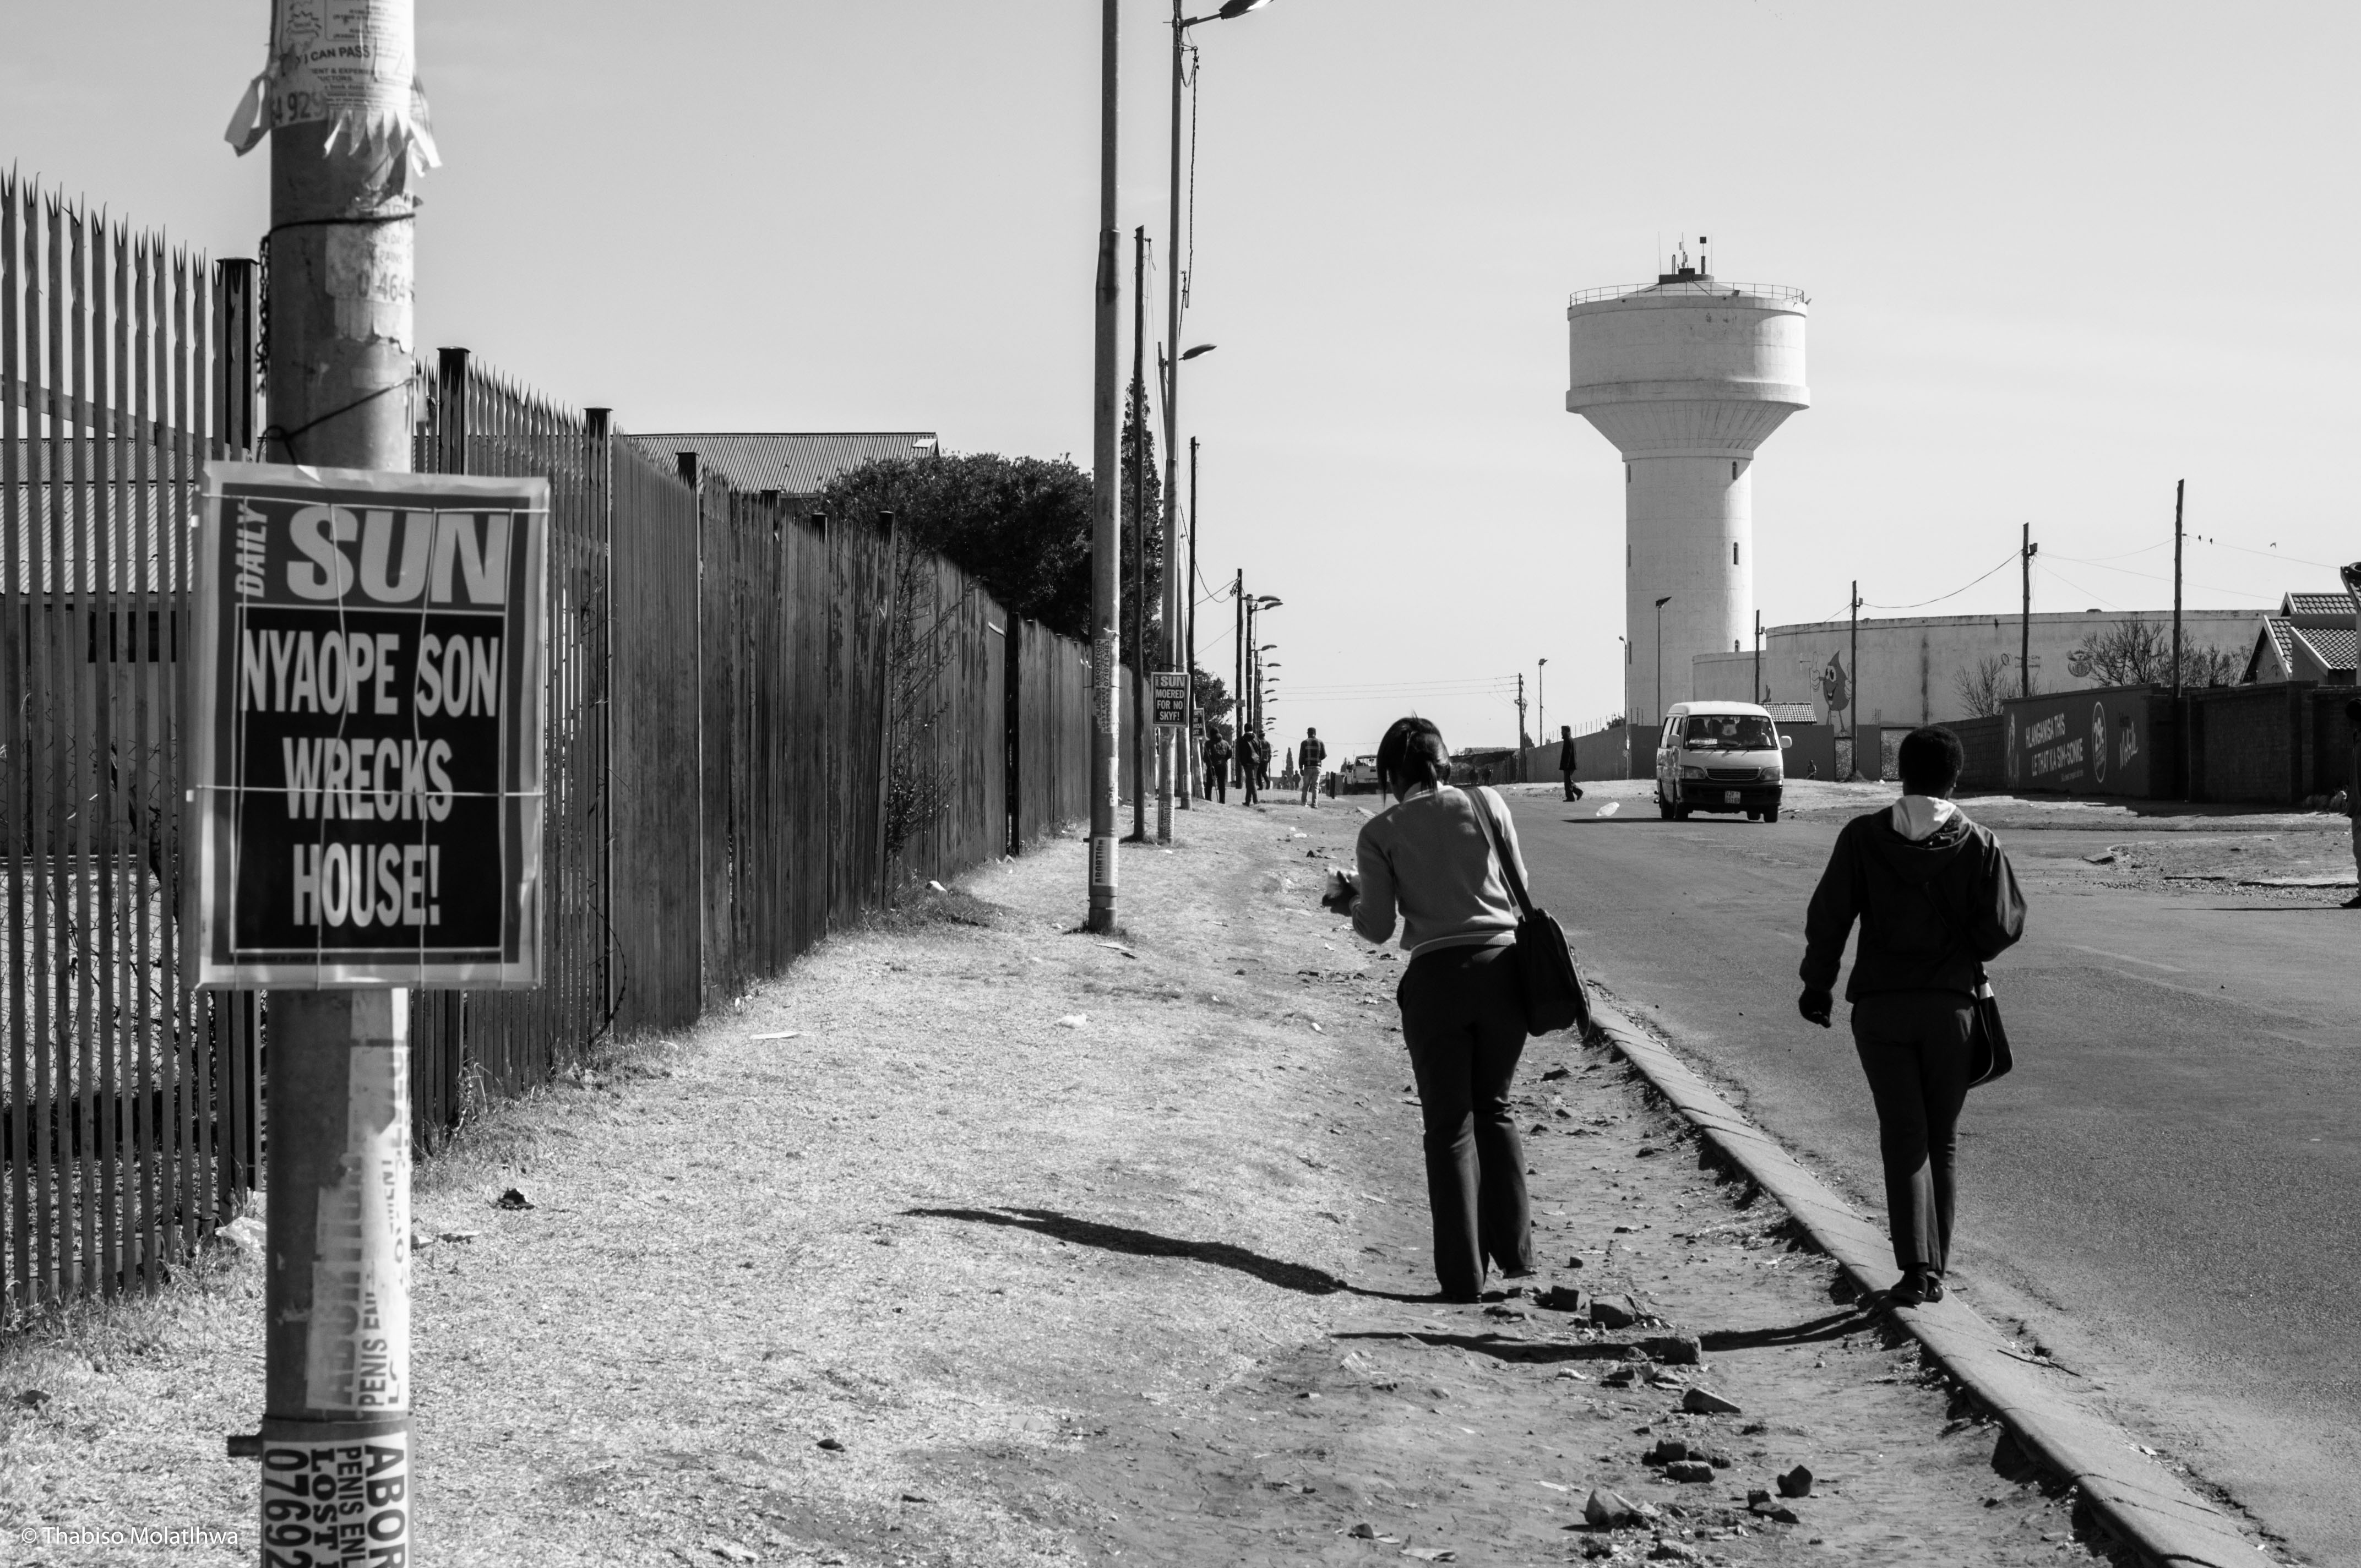 This image was taken by young photographers in the Livity Africa media training programme in South Africa.